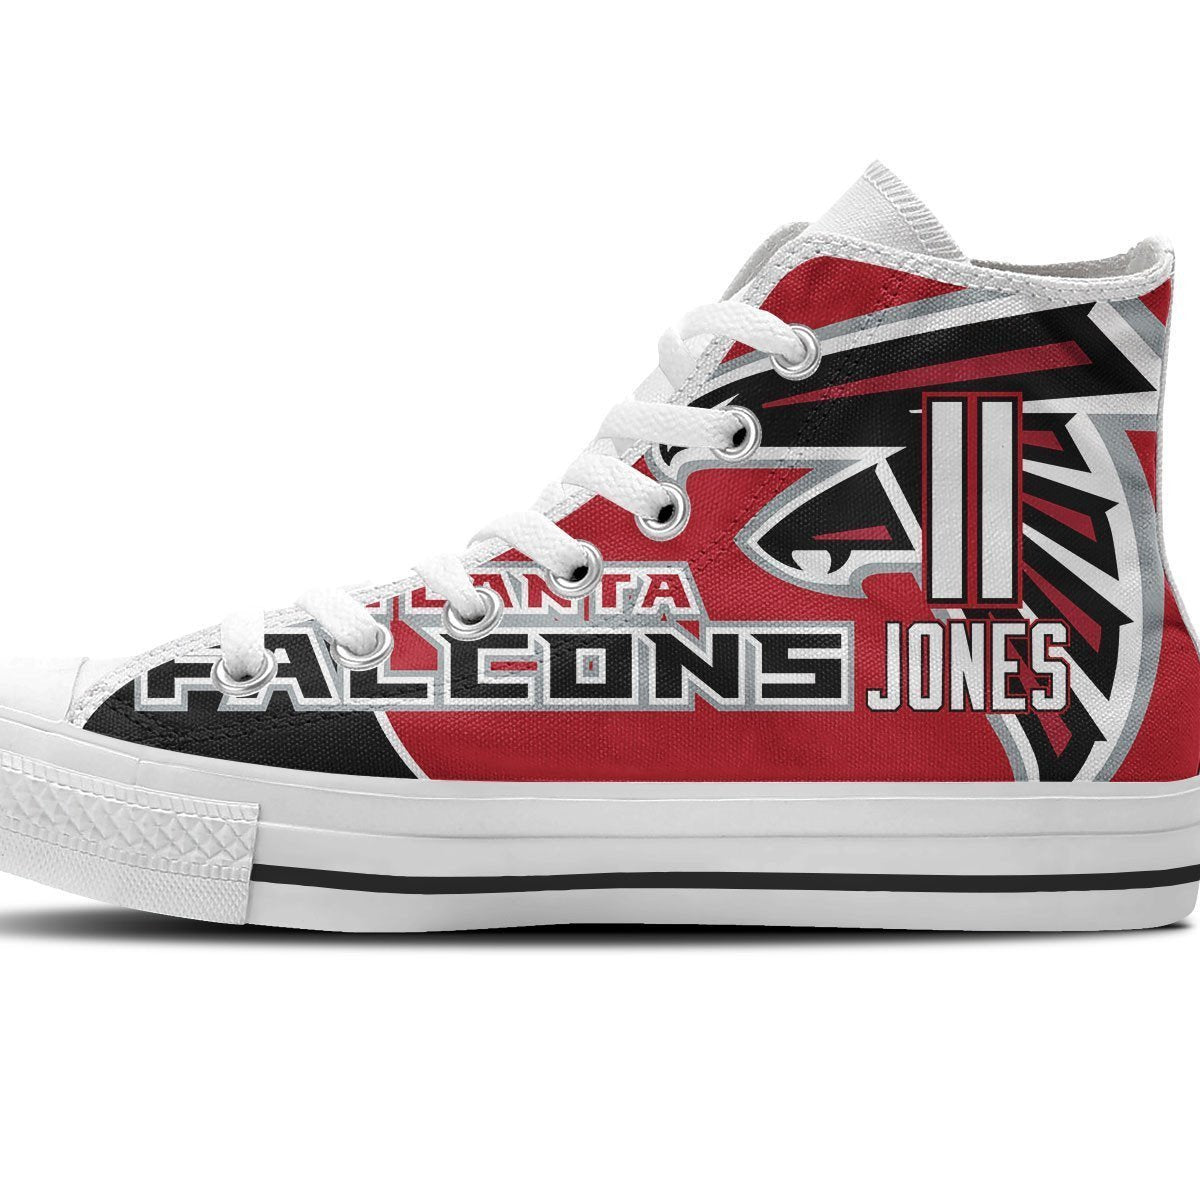 julio jones mens high top sneakers high top